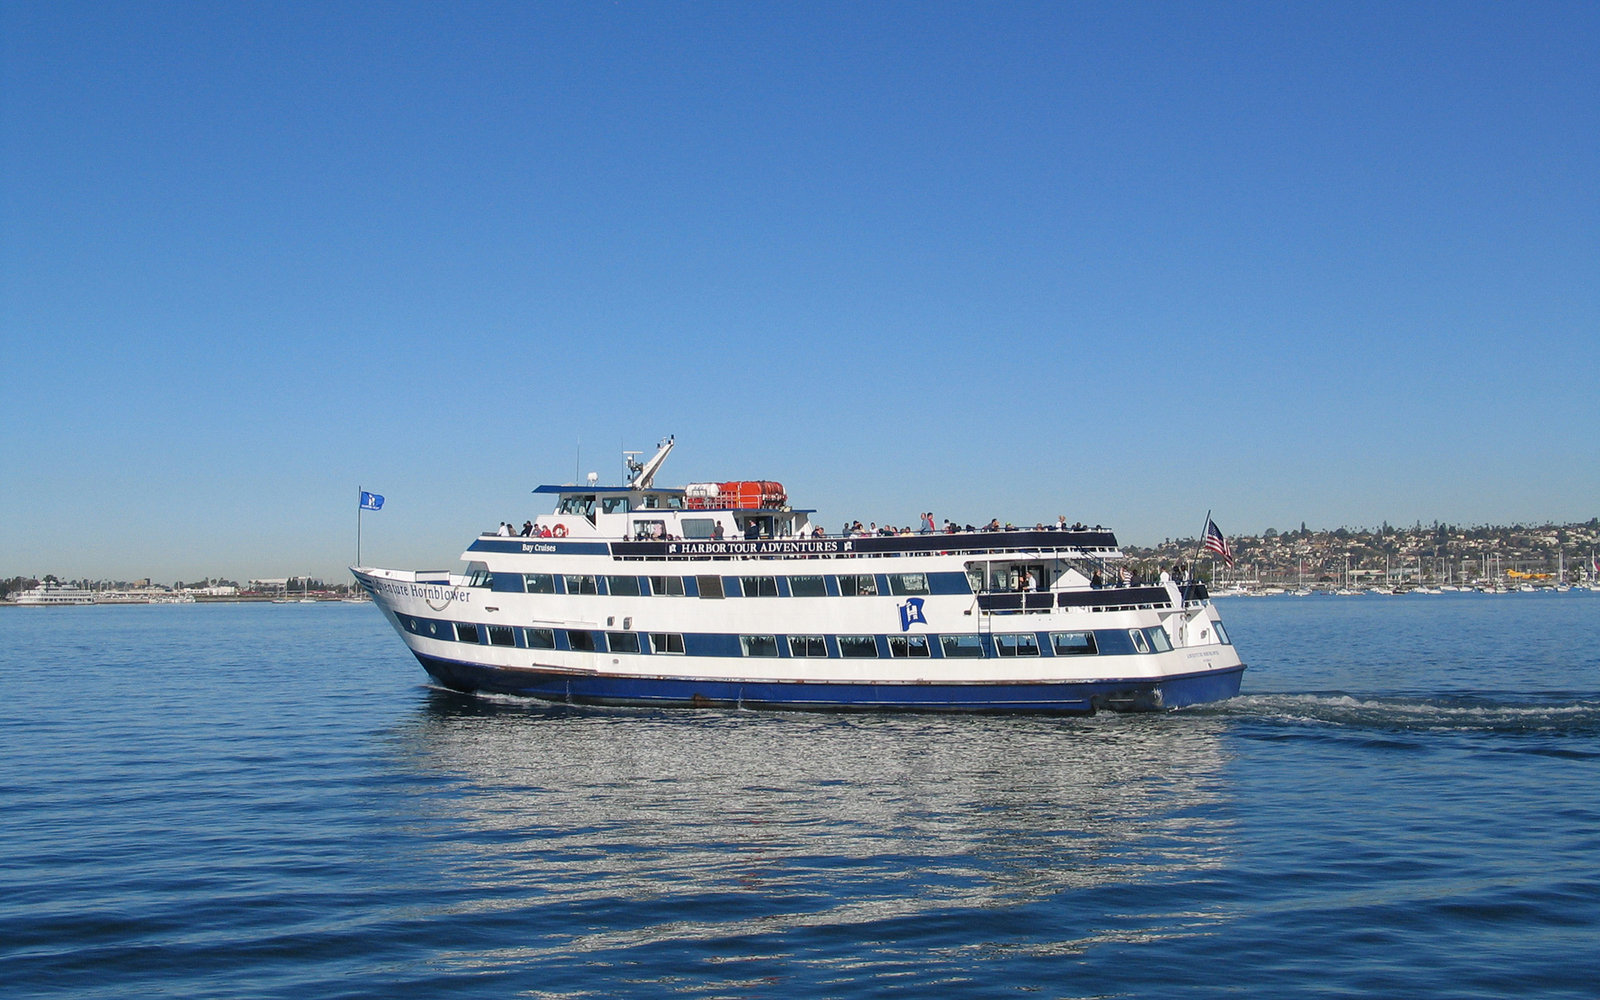 California Hornblower cruise and event boat.